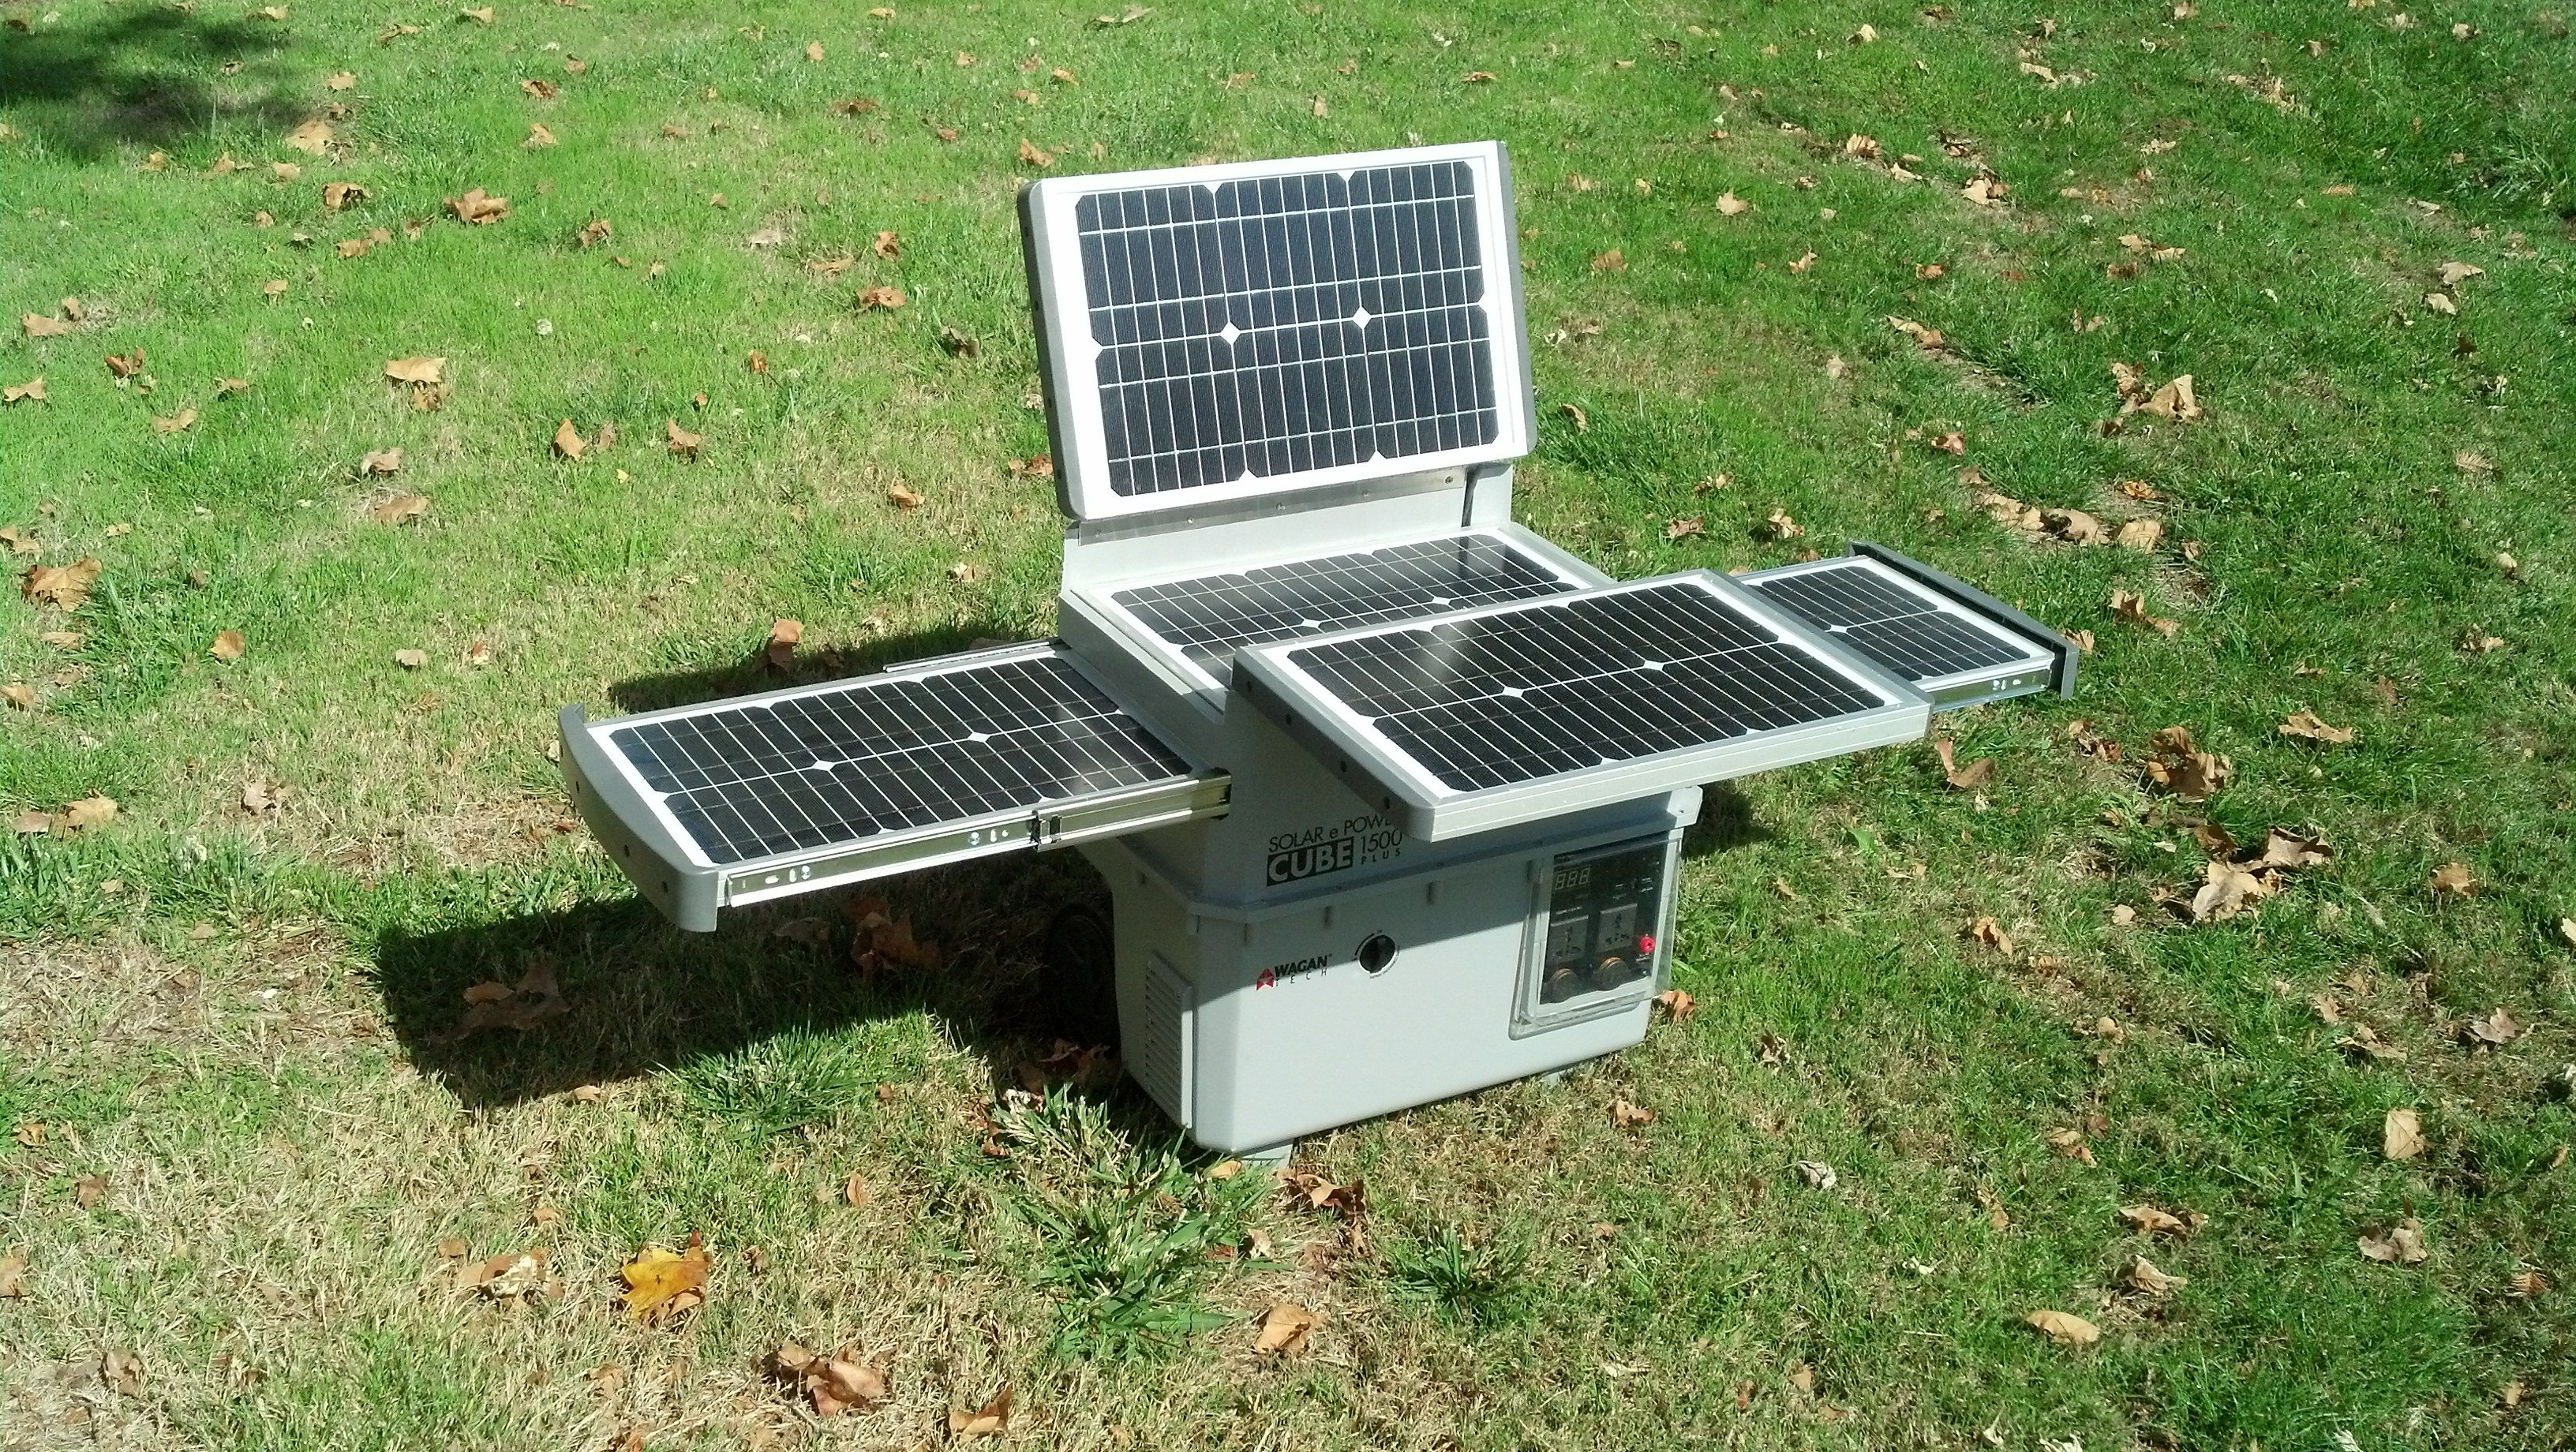 Portable Solar Generator Wagan Tech Solar E Cube 1500 Solar Technology Solar Roof Solar Panel System